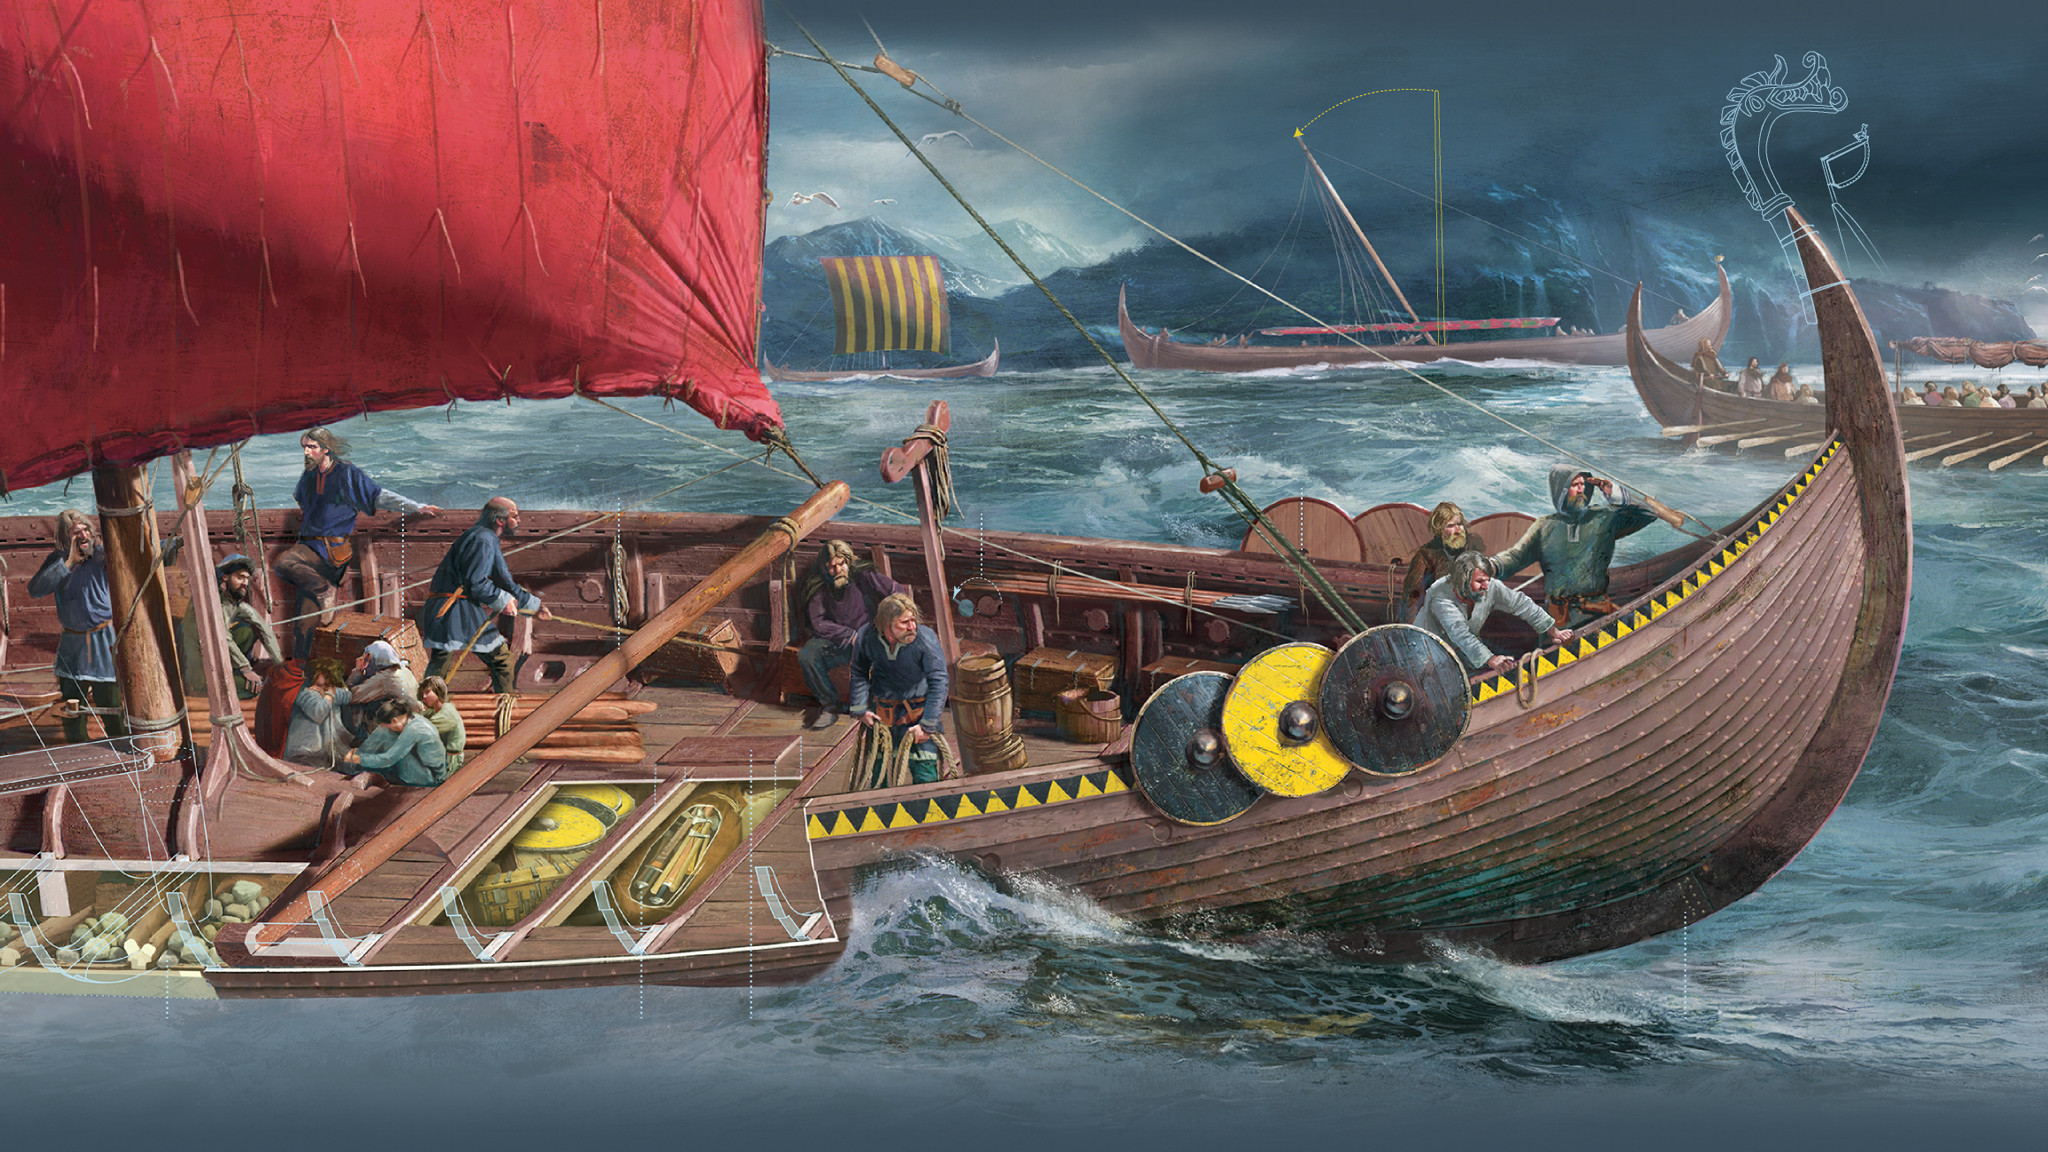 the early history and voyages of the vikings A famous viking explorer returned home from a voyage and found his name missing from the town register when the craziness of new year's eve 1999 has come and gone, the significance of the millennium for north americans will focus on two events 1,000 years apart that changed our history.